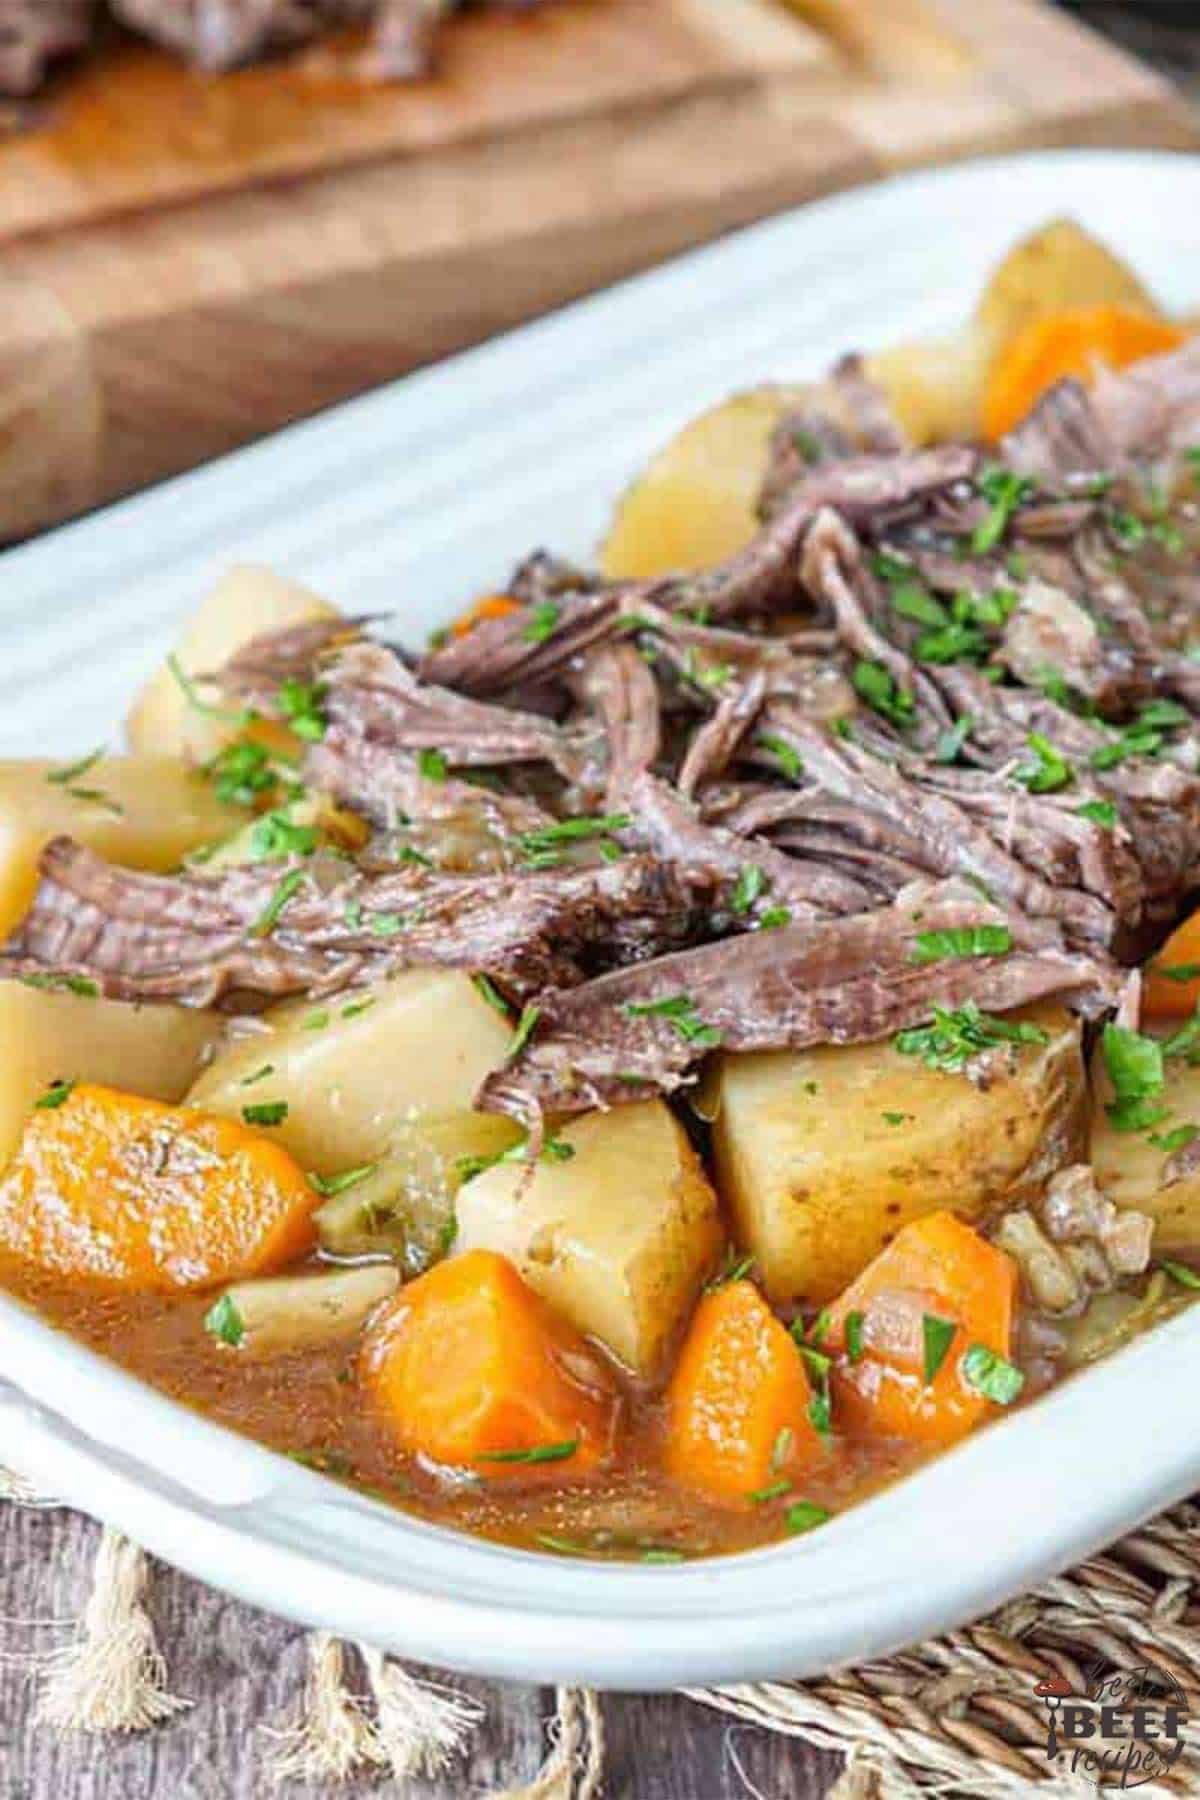 Shredded slow cooker roast beef with potatoes and carrots on a white dish